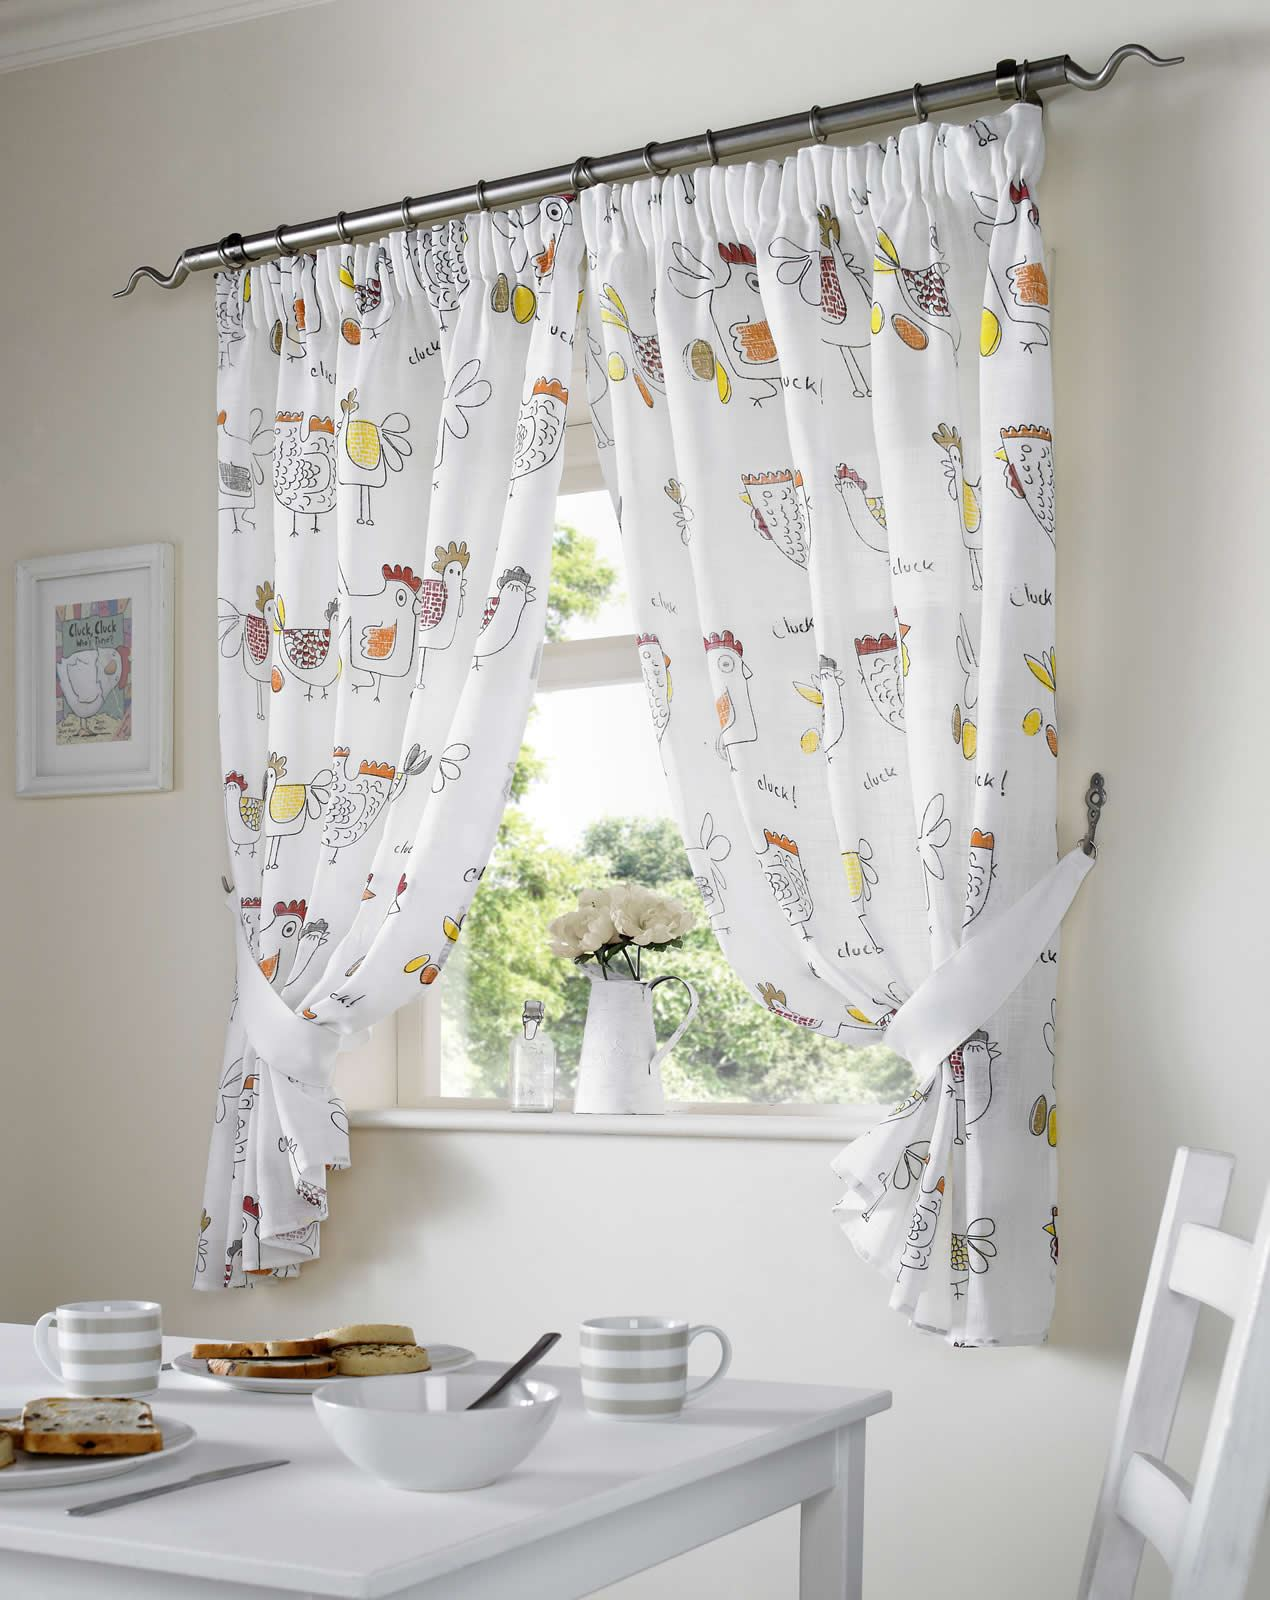 CHICKENS KITCHEN CURTAINS READY MADE PAIRS DINING ROOM CURTAINS ALL SIZES EBay